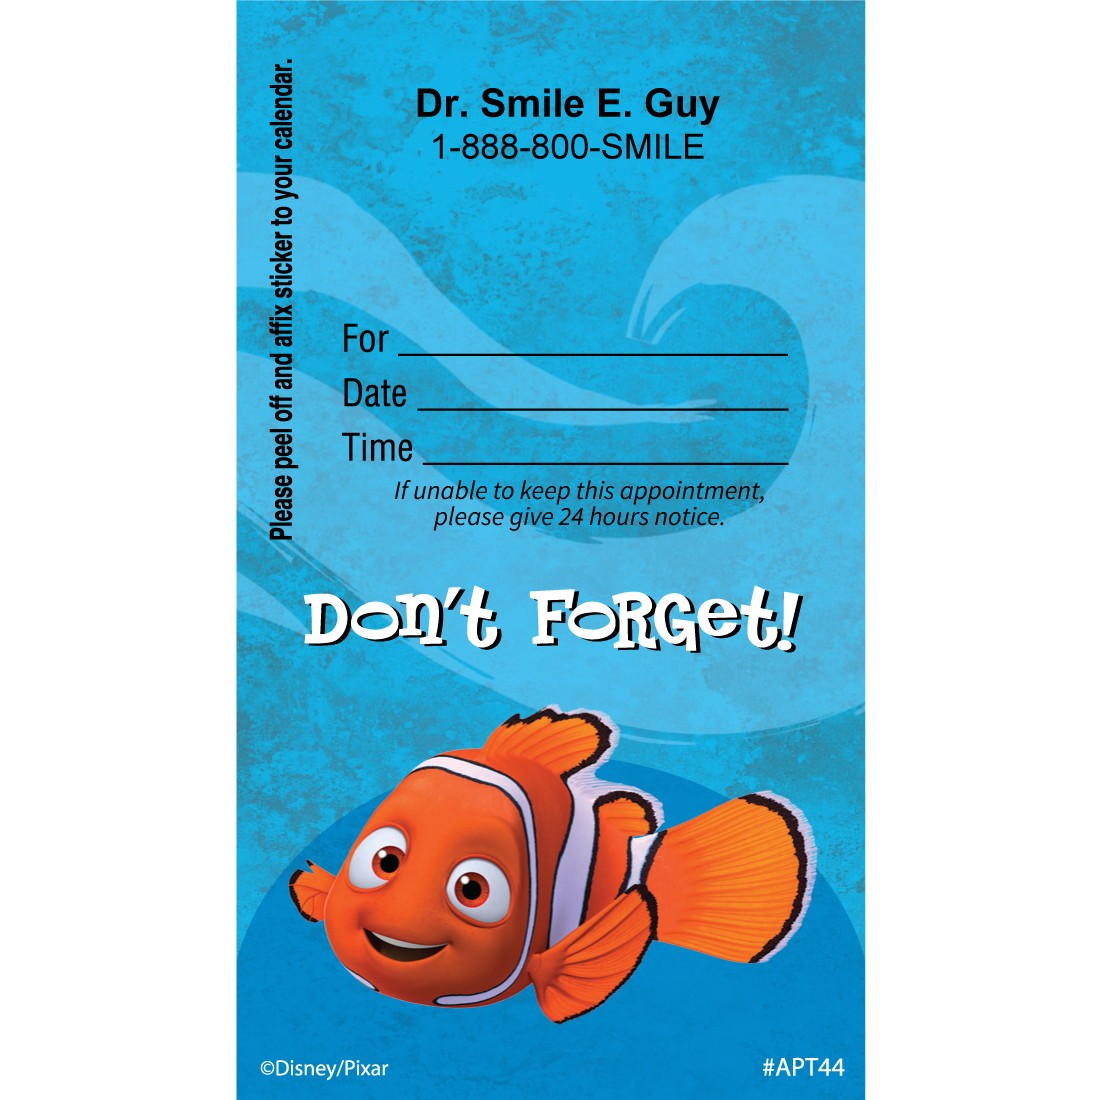 Custom Nemo Cute Dont Forget Appointment Cards [image]